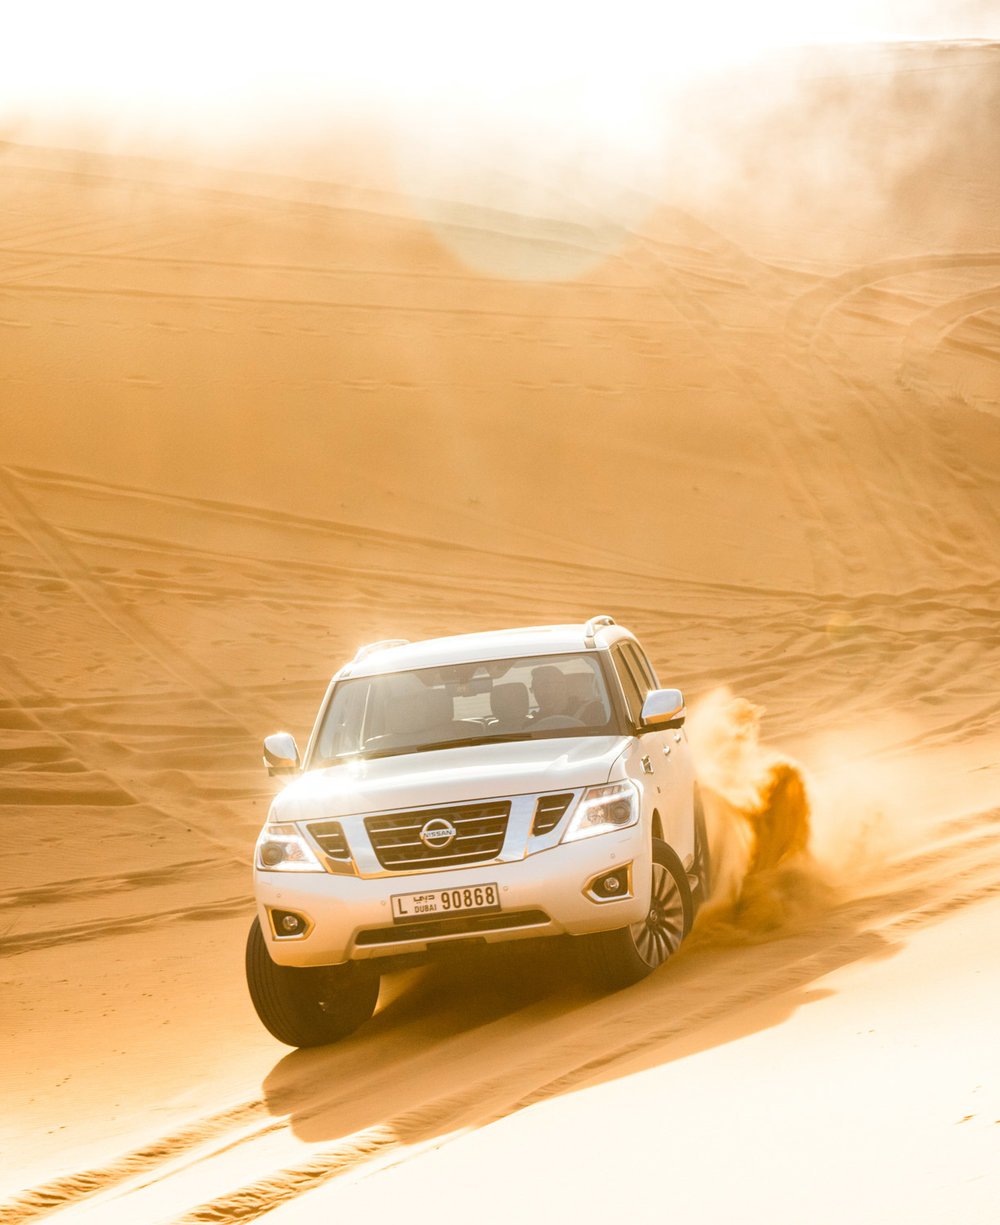 awstudio_tim_sutton_nissan_global_morocco_10.jpg